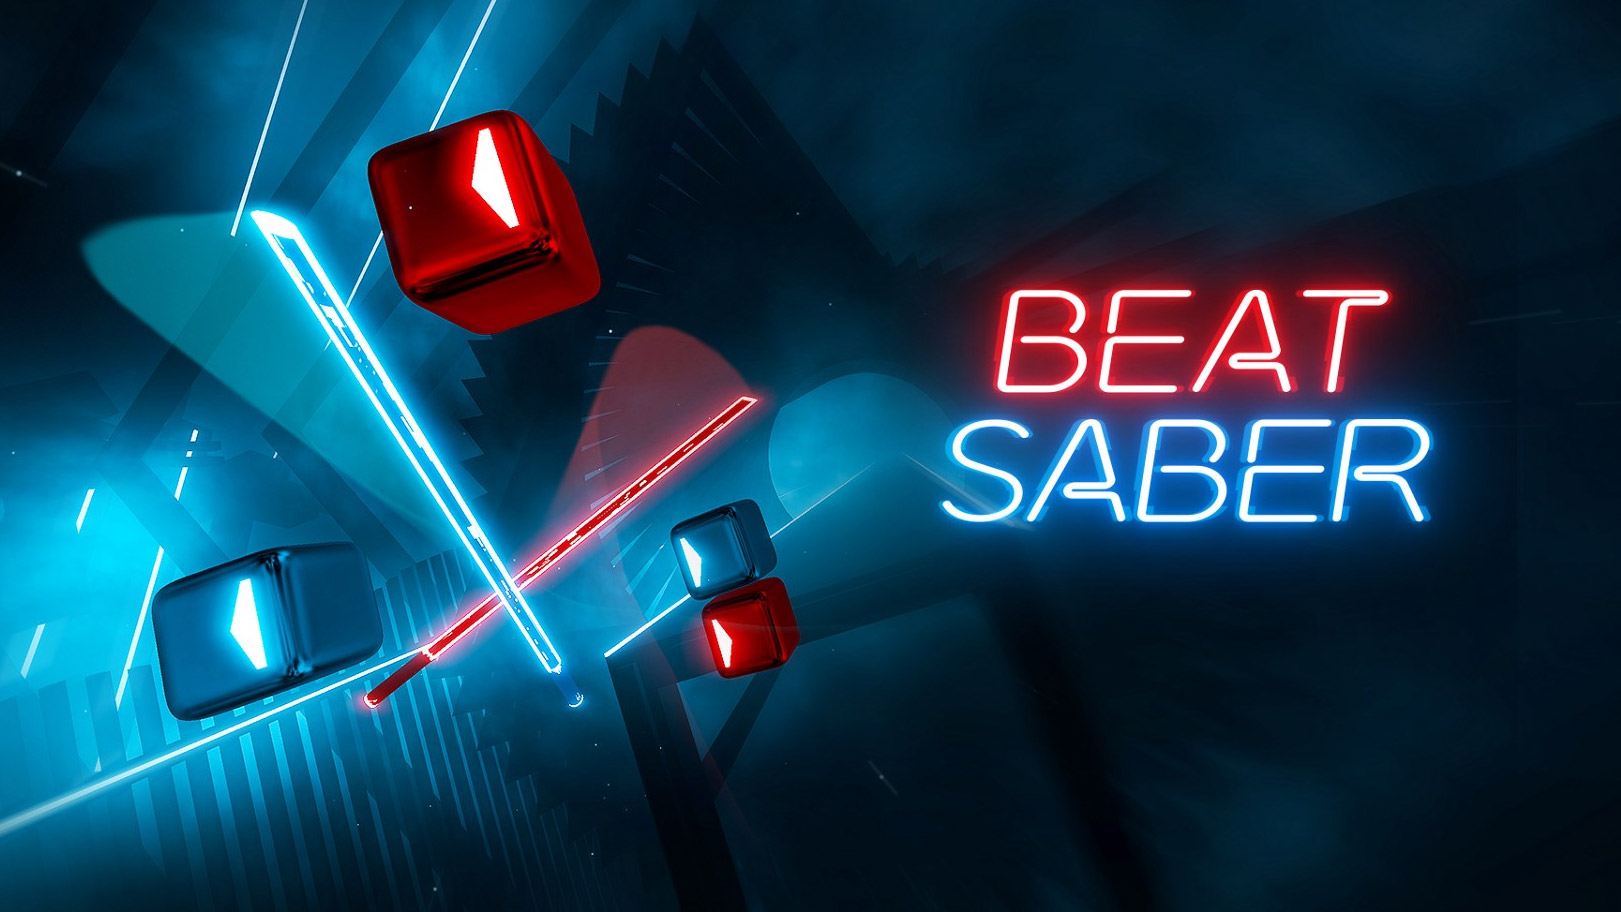 Update] ModSaber is No More, New 'Beat Saber' Mod Solution Now